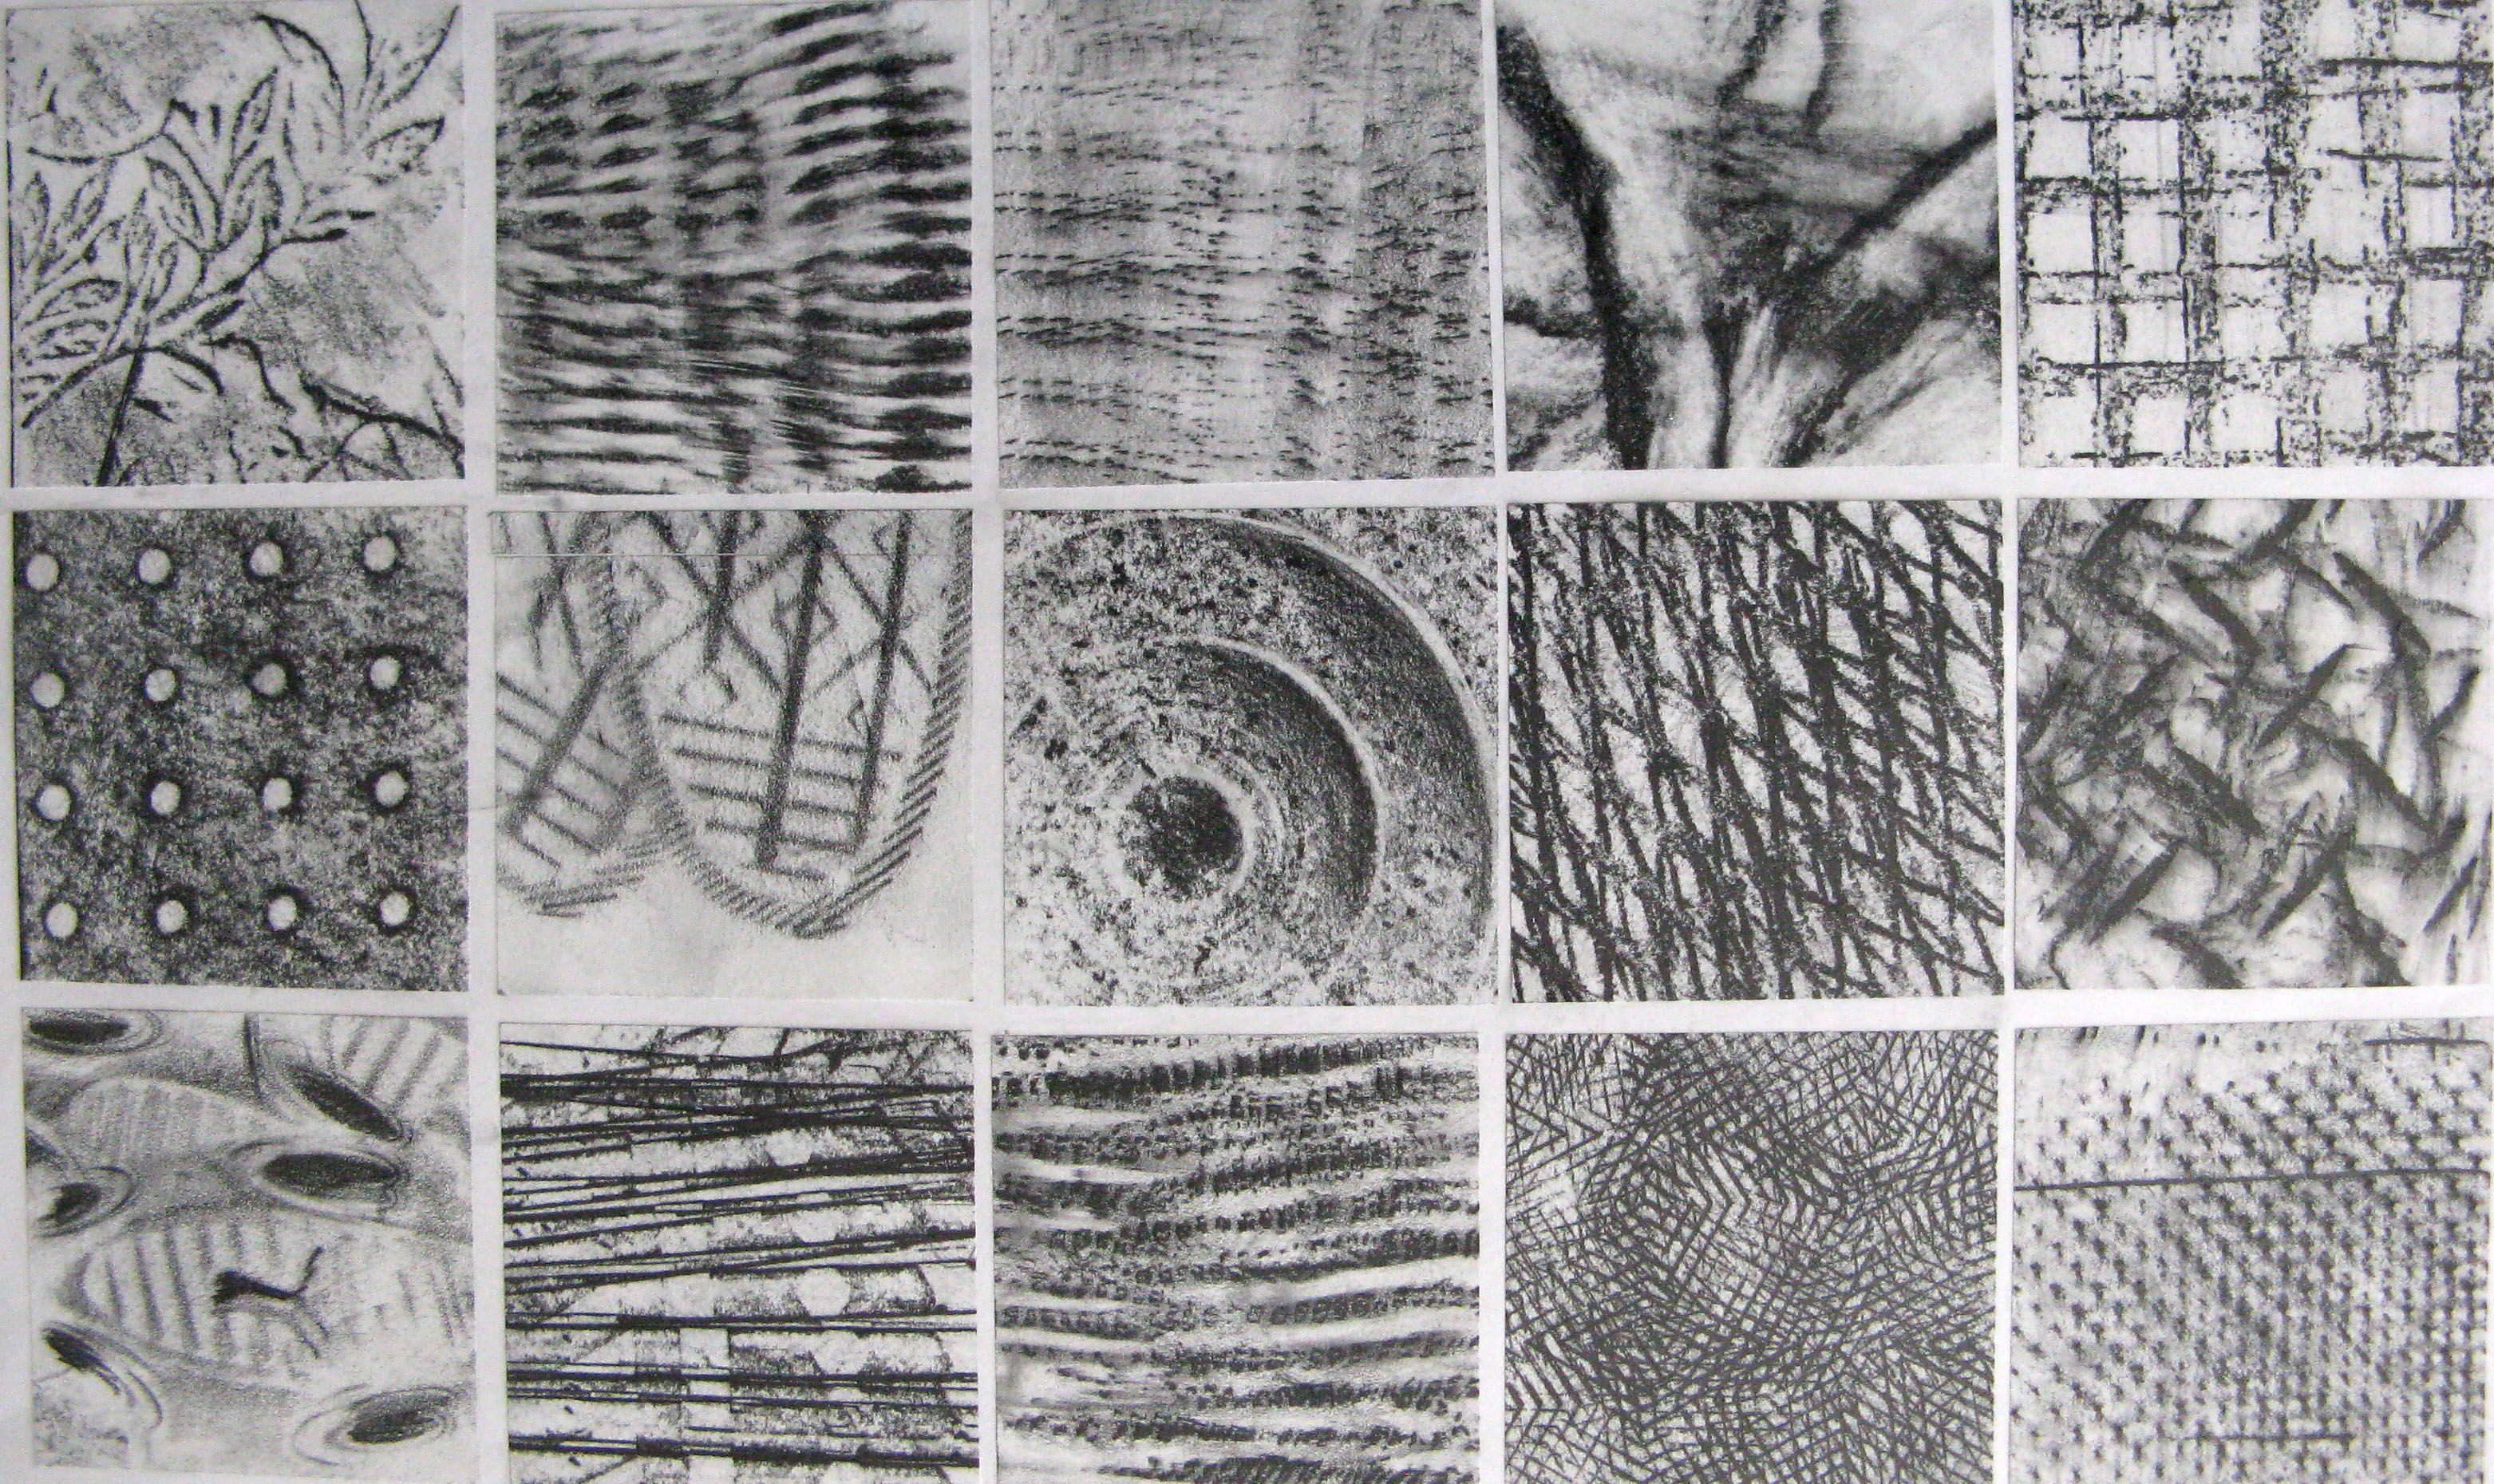 texture in drawing - Google Search | mark making and ...